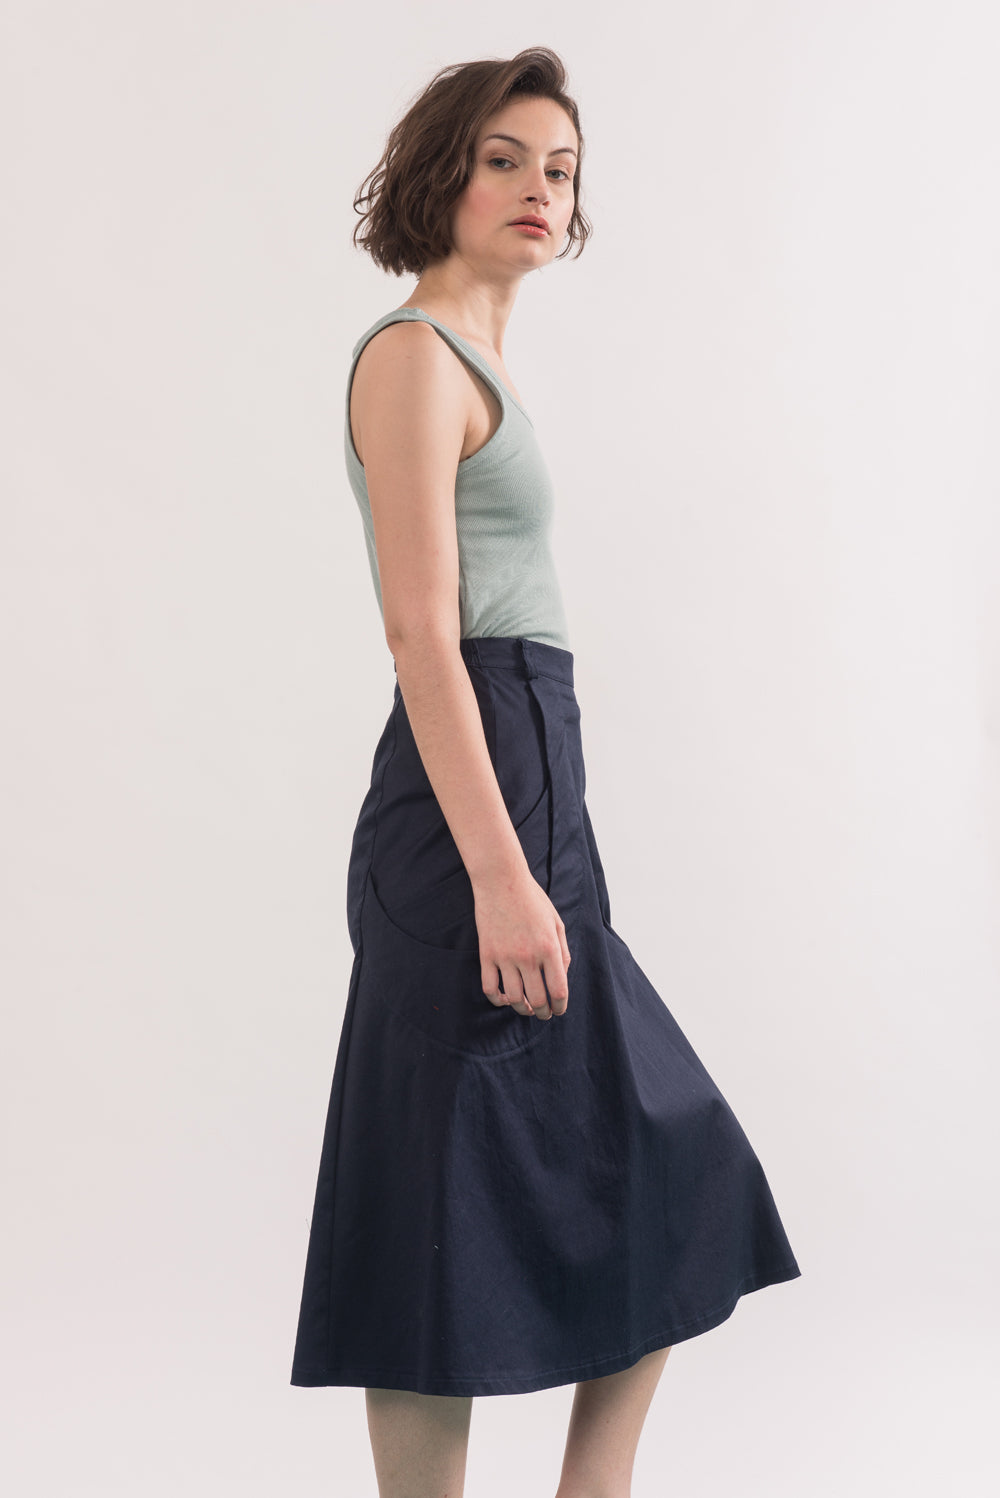 Abramovic Skirt by Jennifer Glasgow, Navy, side view, A-line skirt, midi length, origami pockets, organic cotton twill, eco fabric, OEKO-TEX certified Standard 100, sizes XS to XL, made in Montreal Canada